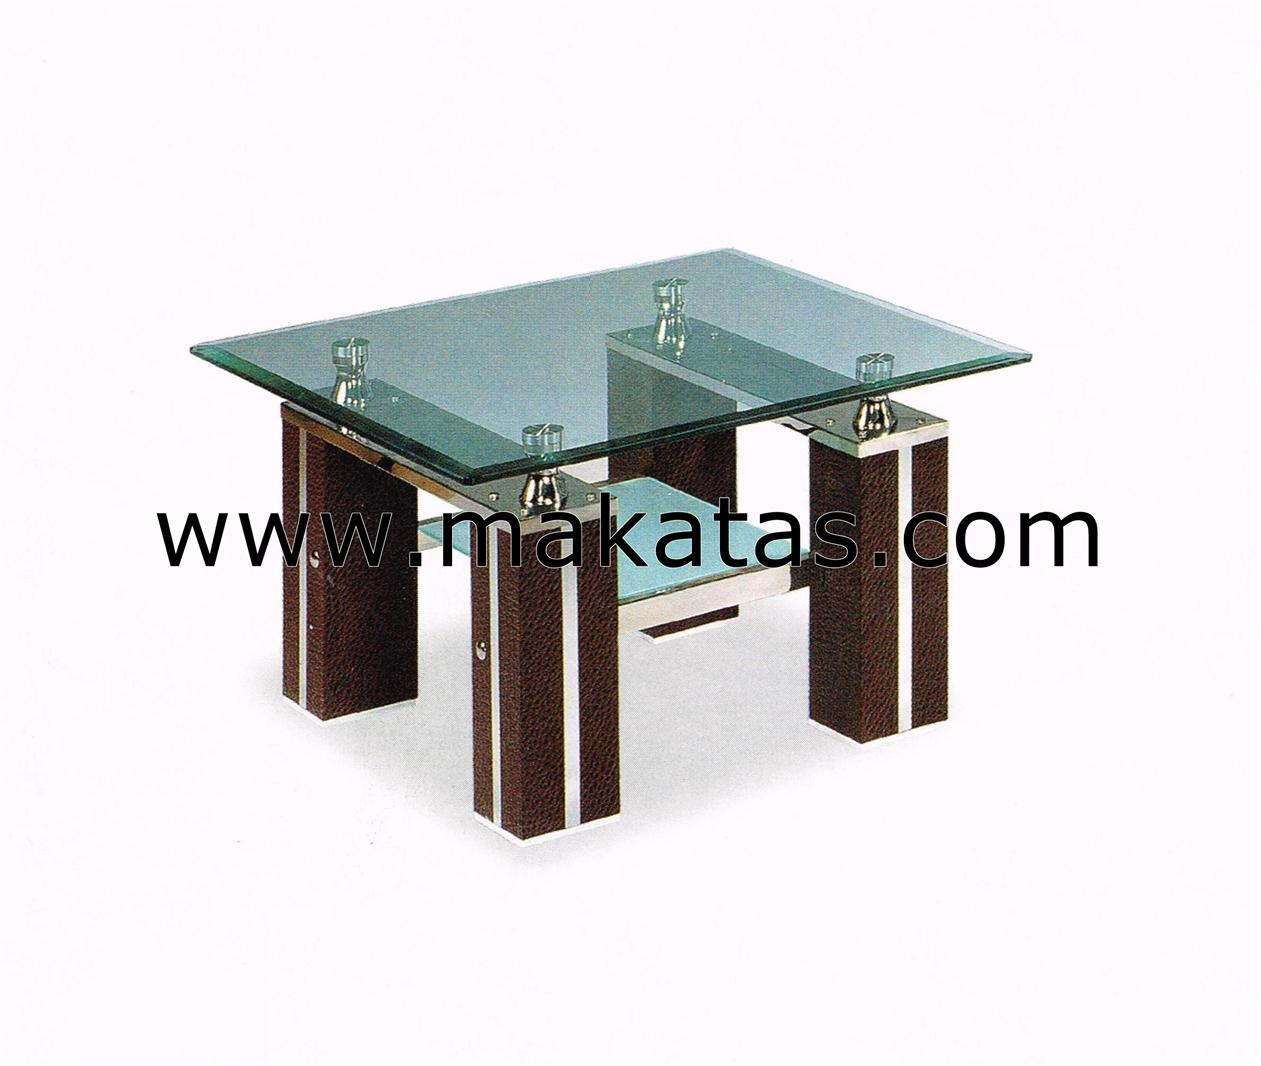 Office Table|Office Furniture|Main Table|Makatas Coffee Table